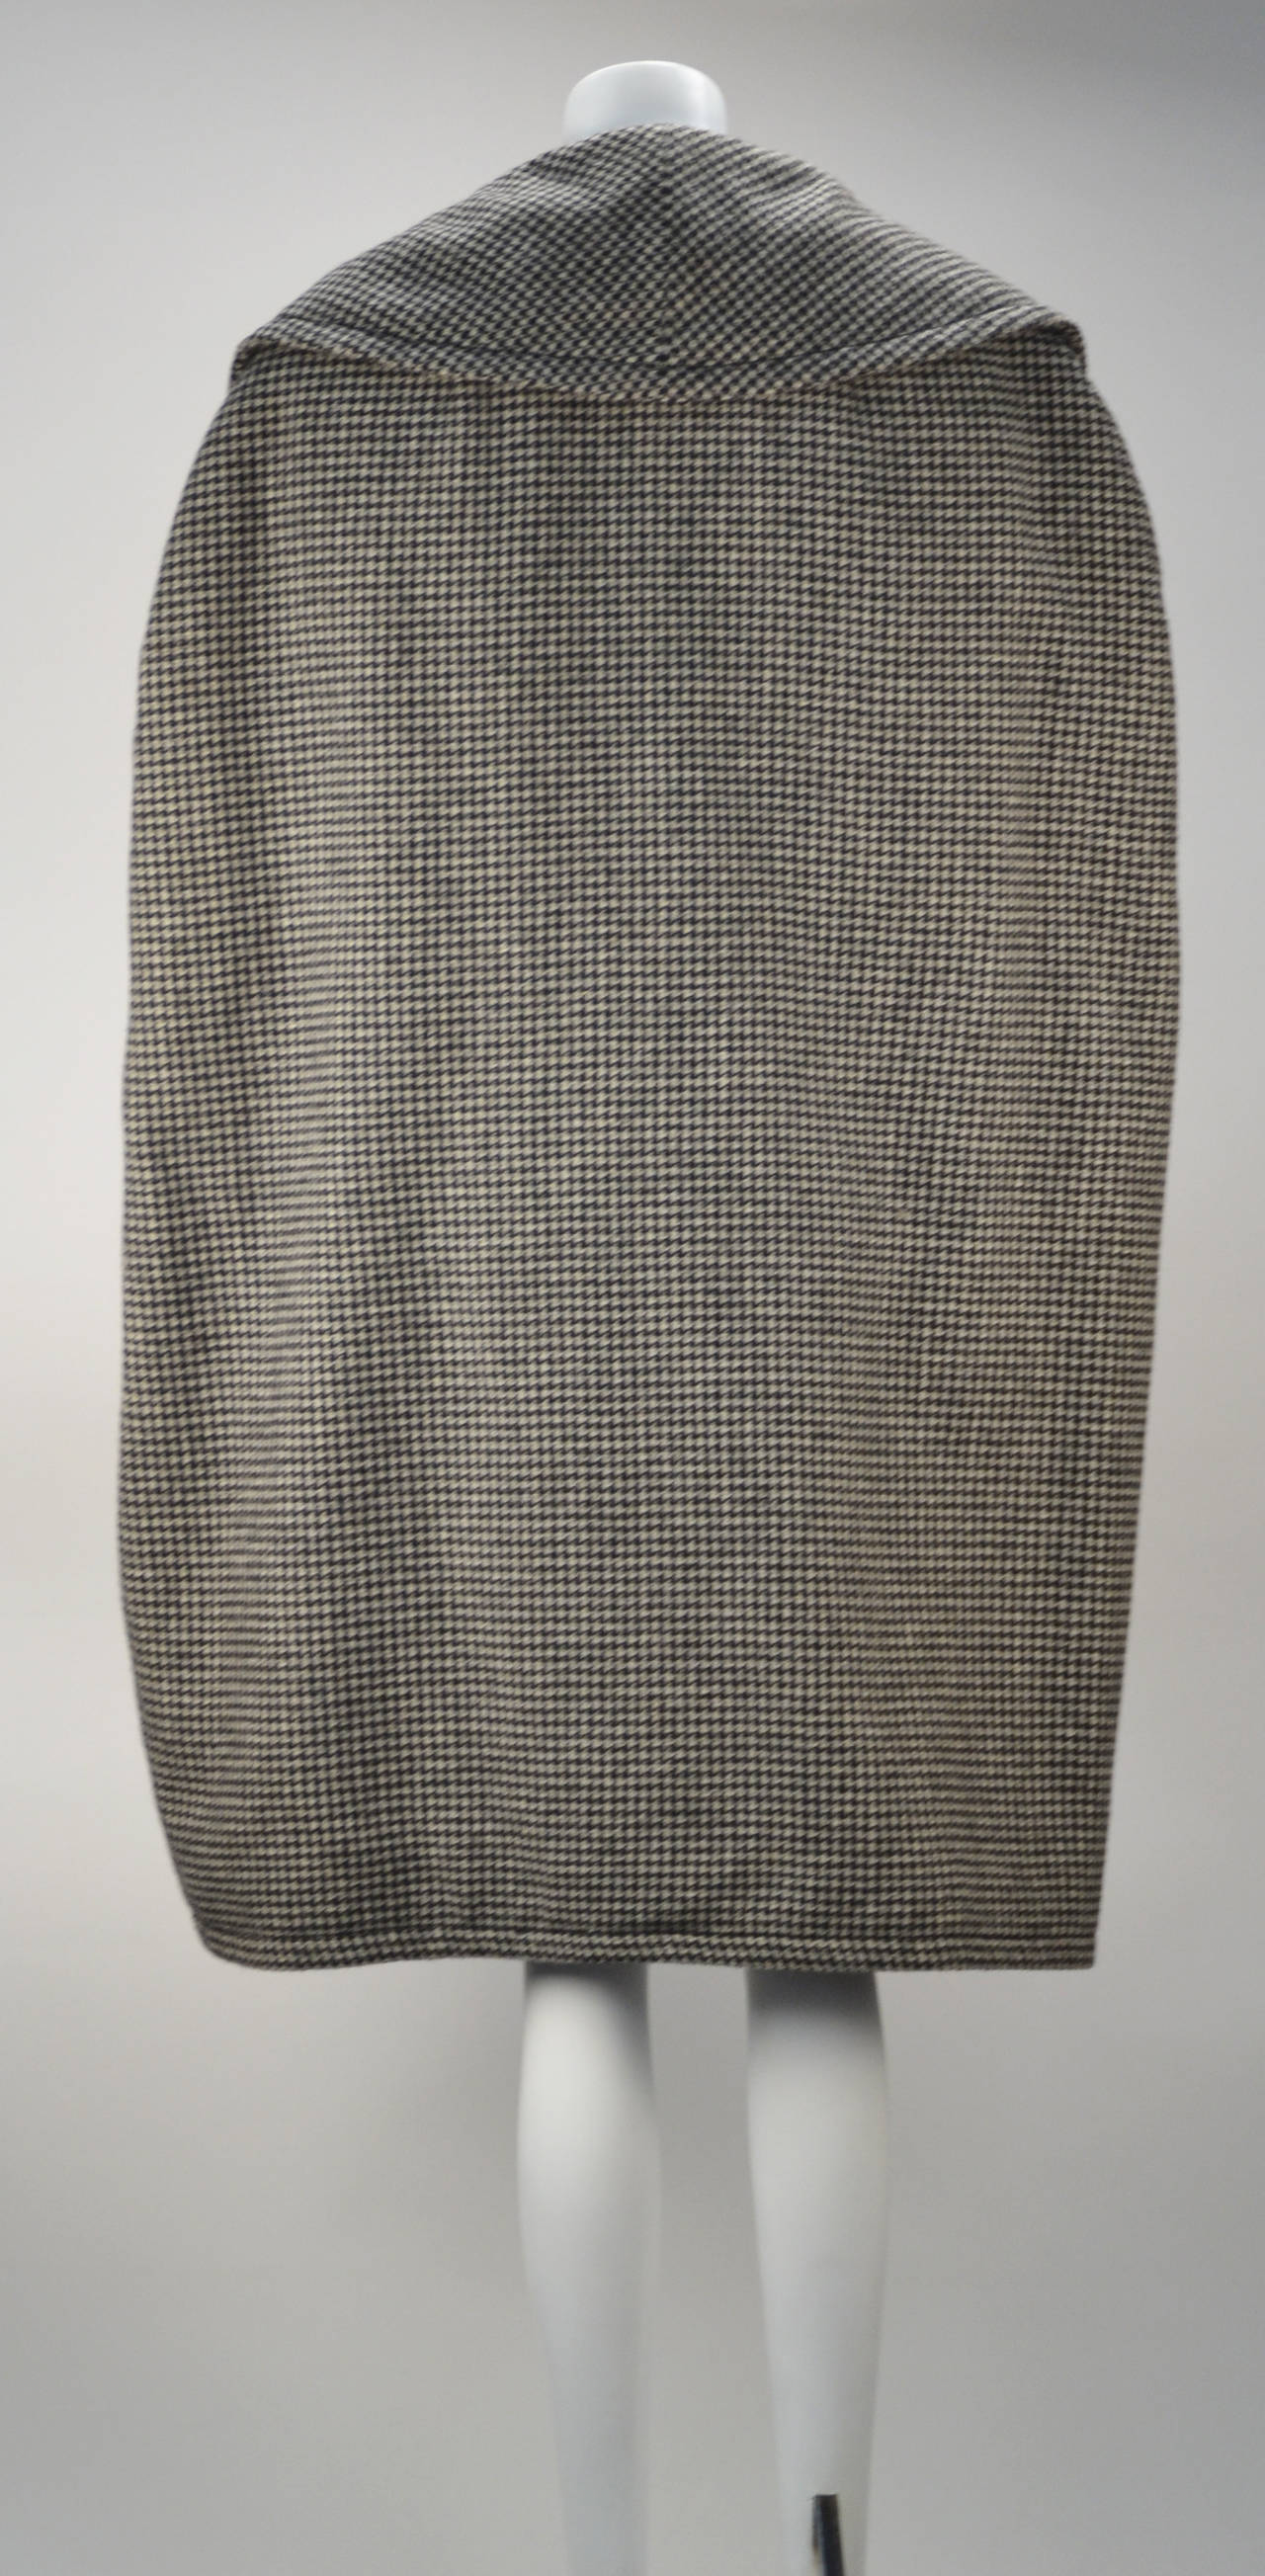 1950s Christian Dior Houndstooth Designer Cape and Dress Set In Excellent Condition For Sale In Houston, TX